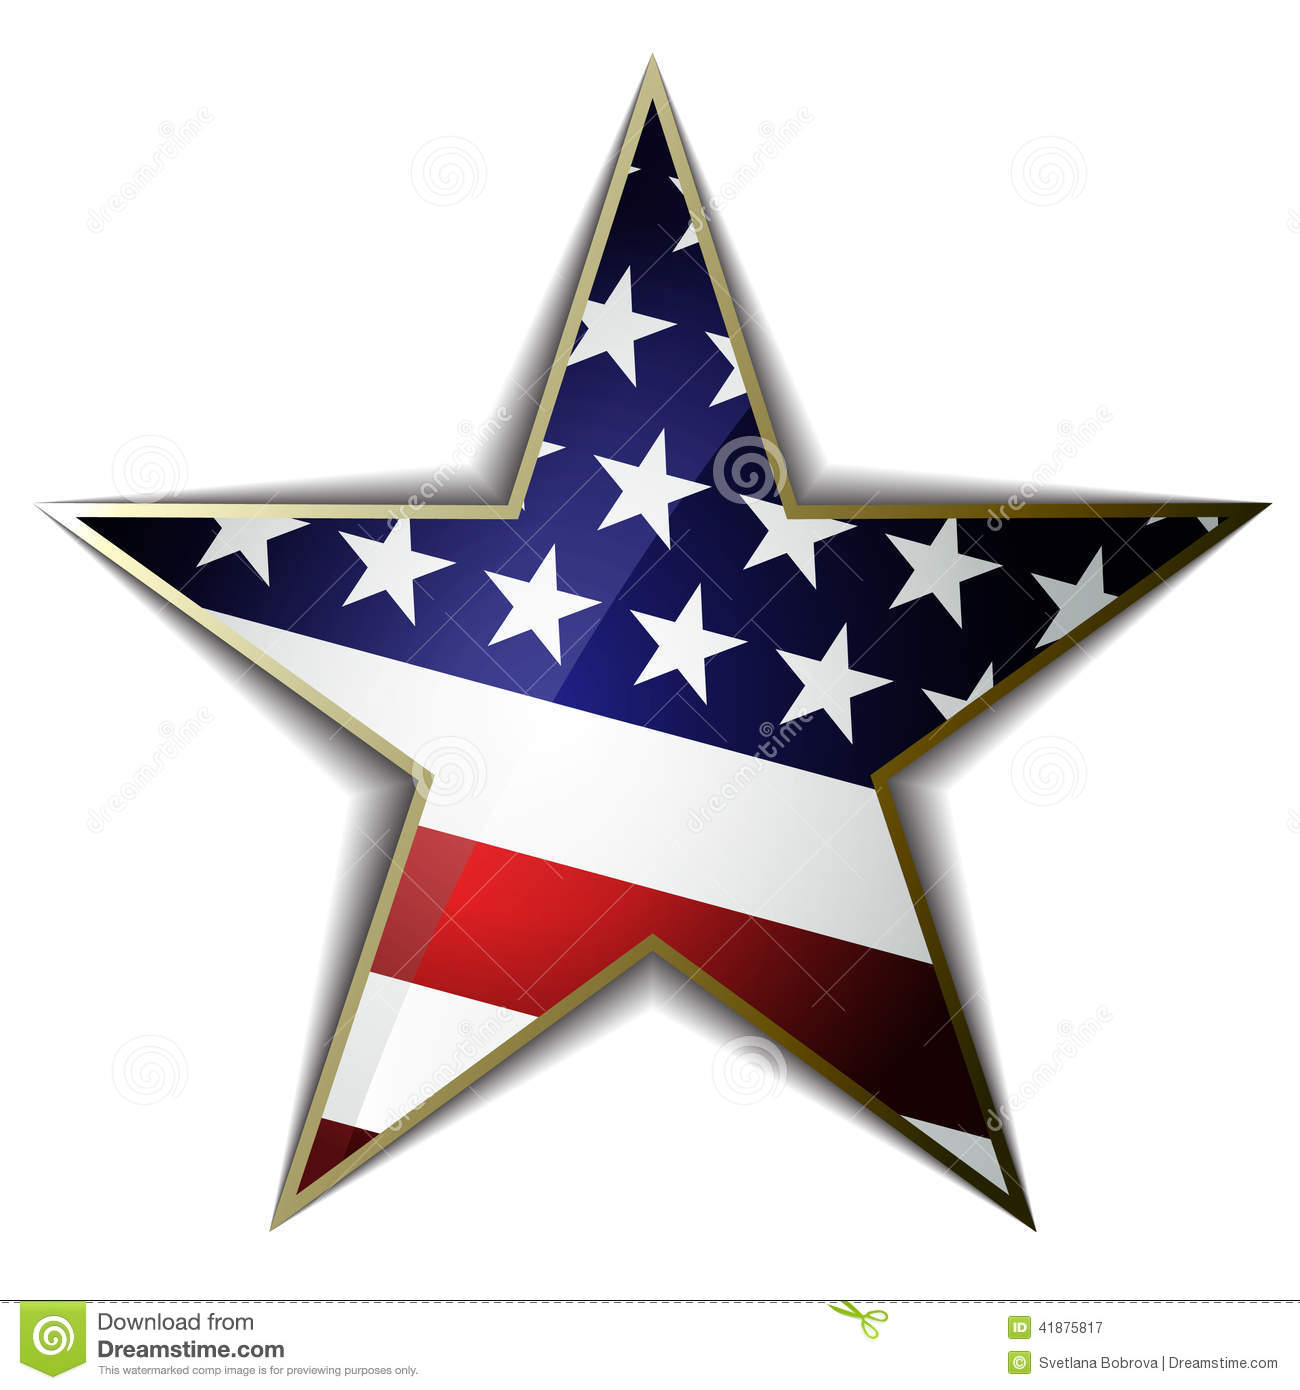 Dallas Cowboys Iphone 7 Wallpaper The American Flag As Star Shaped Symbol Vector Eps10